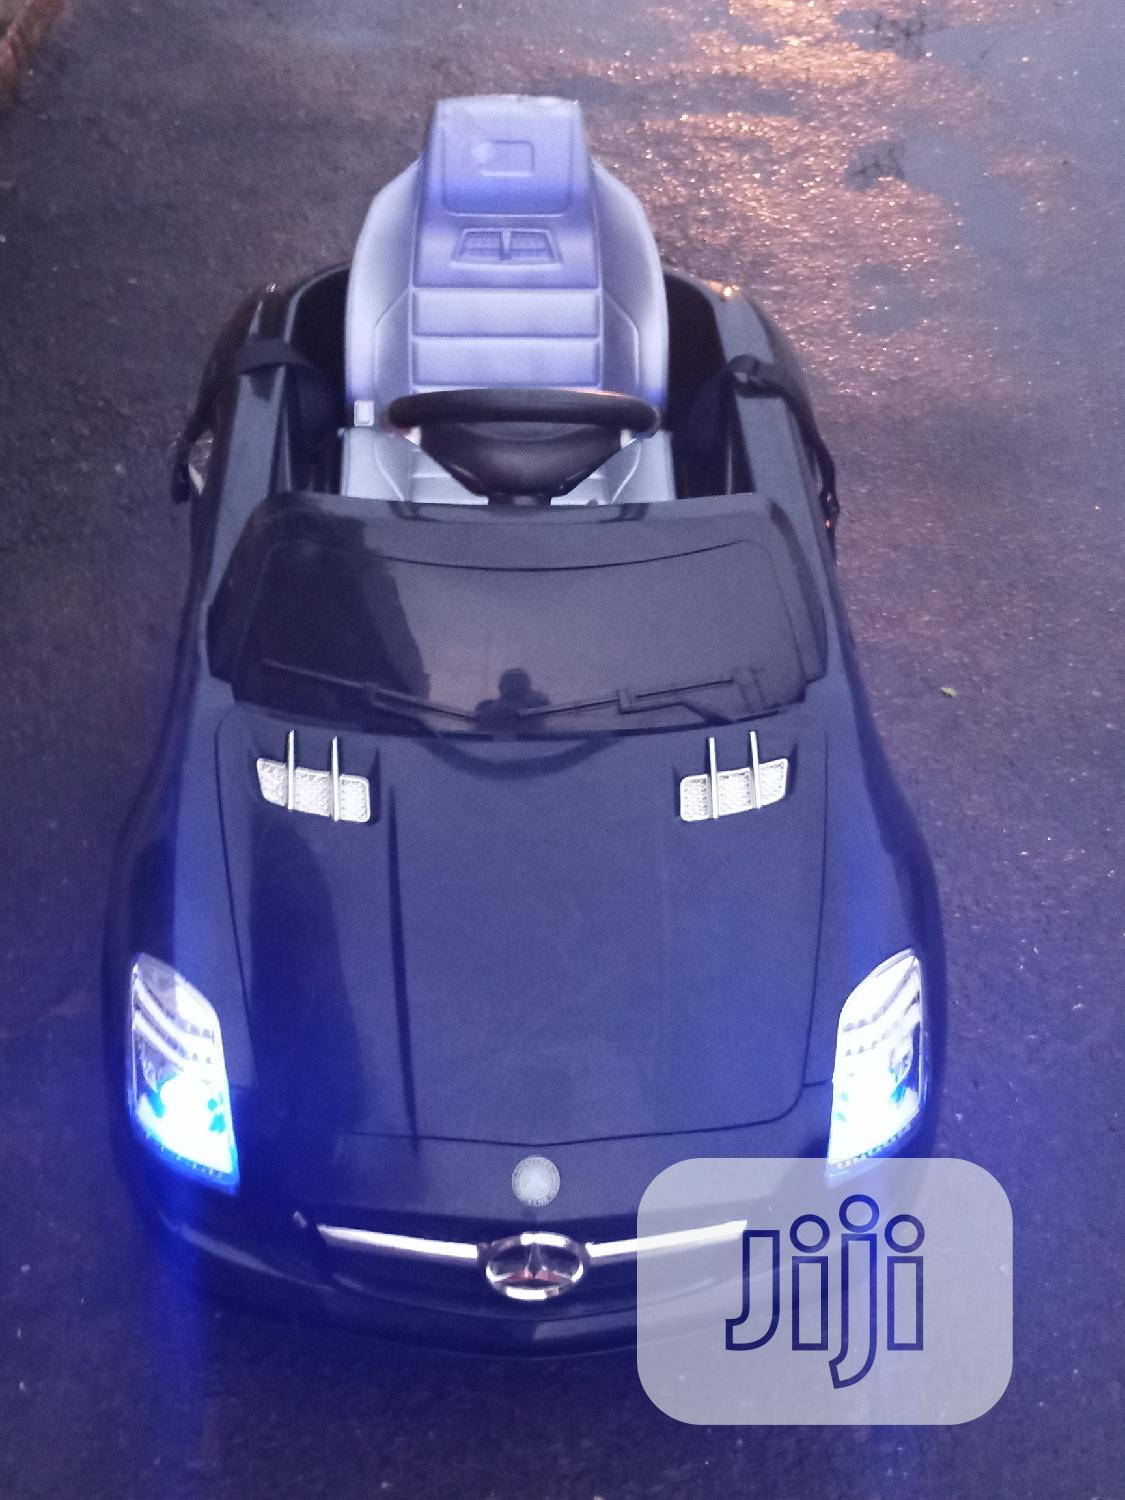 Tokunbo Uk Used Mercedes Benz Toy Car Black | Toys for sale in Ikeja, Lagos State, Nigeria